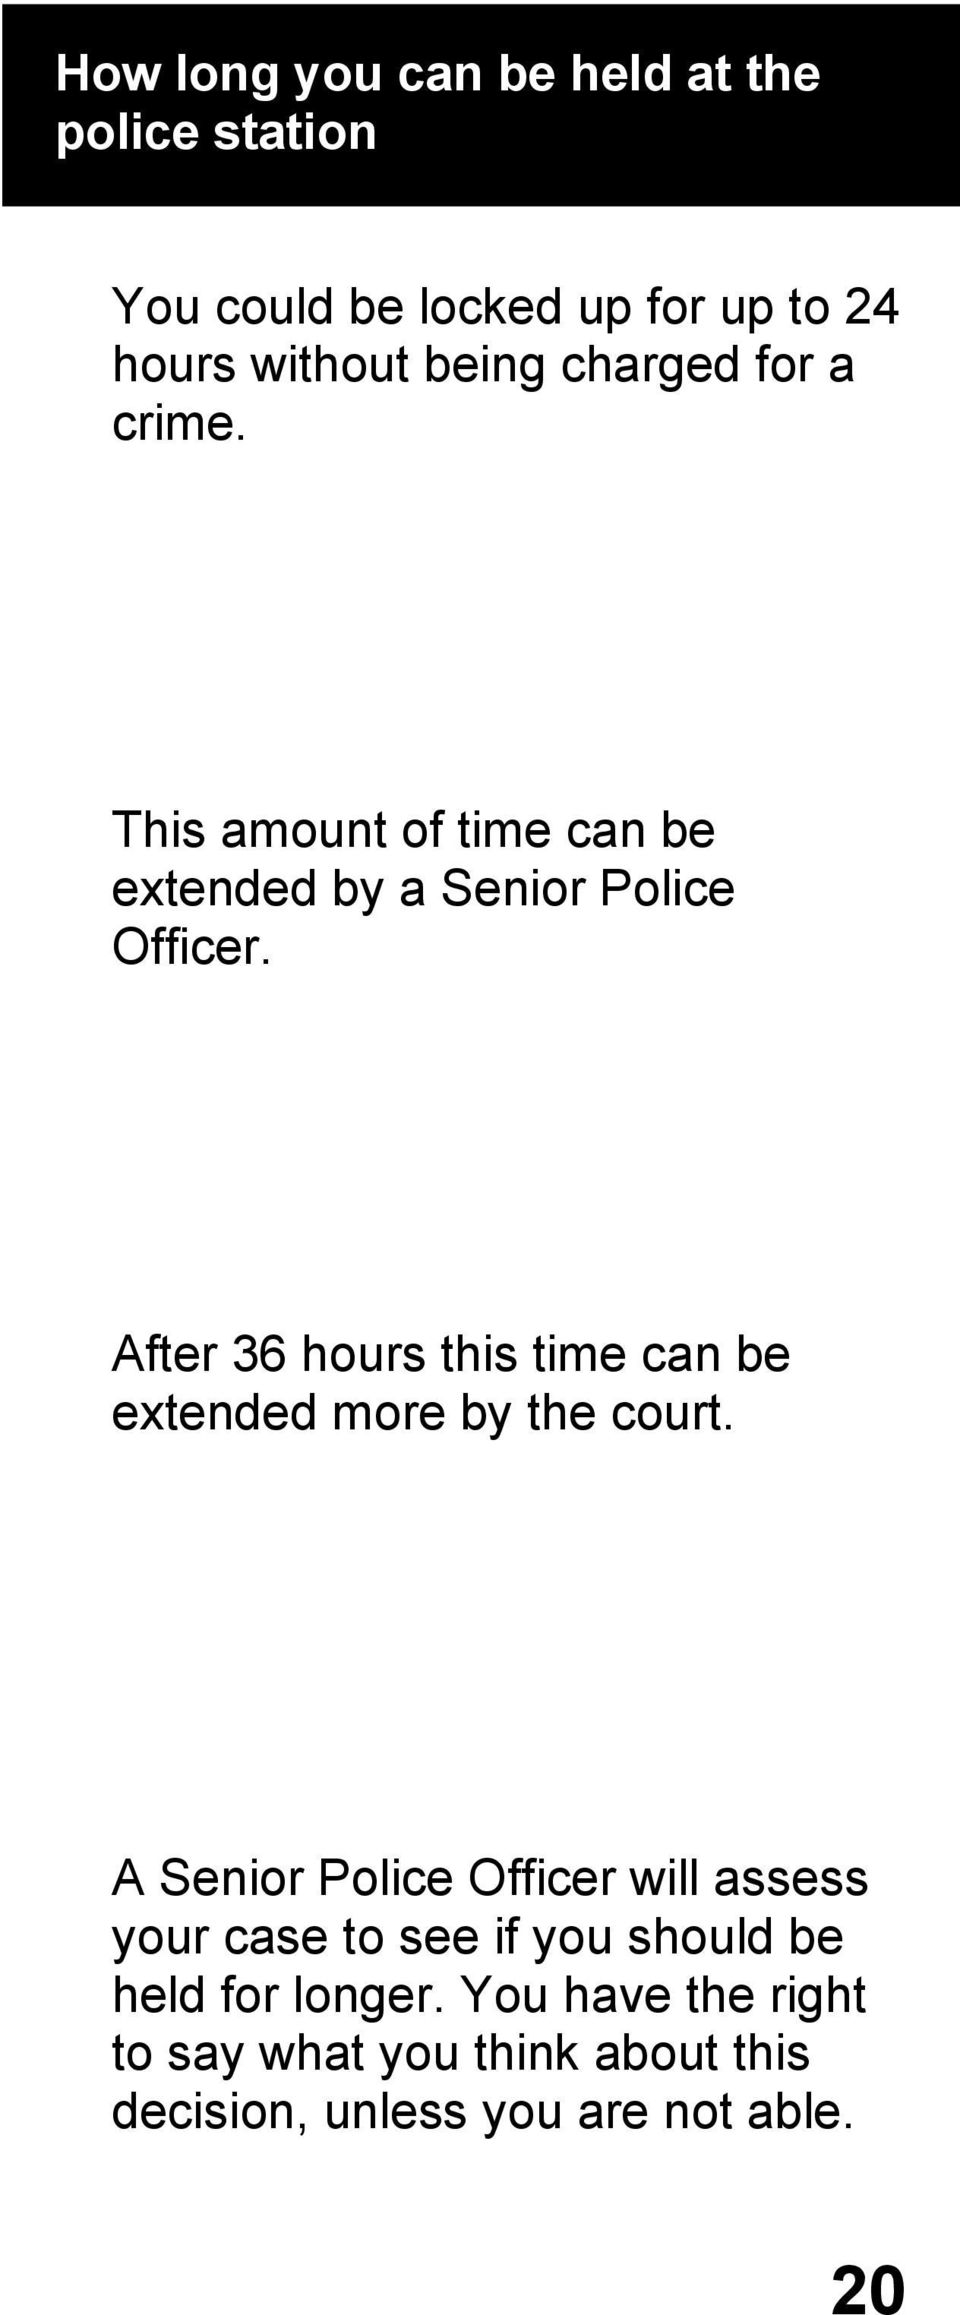 After 36 hours this time can be extended more by the court.